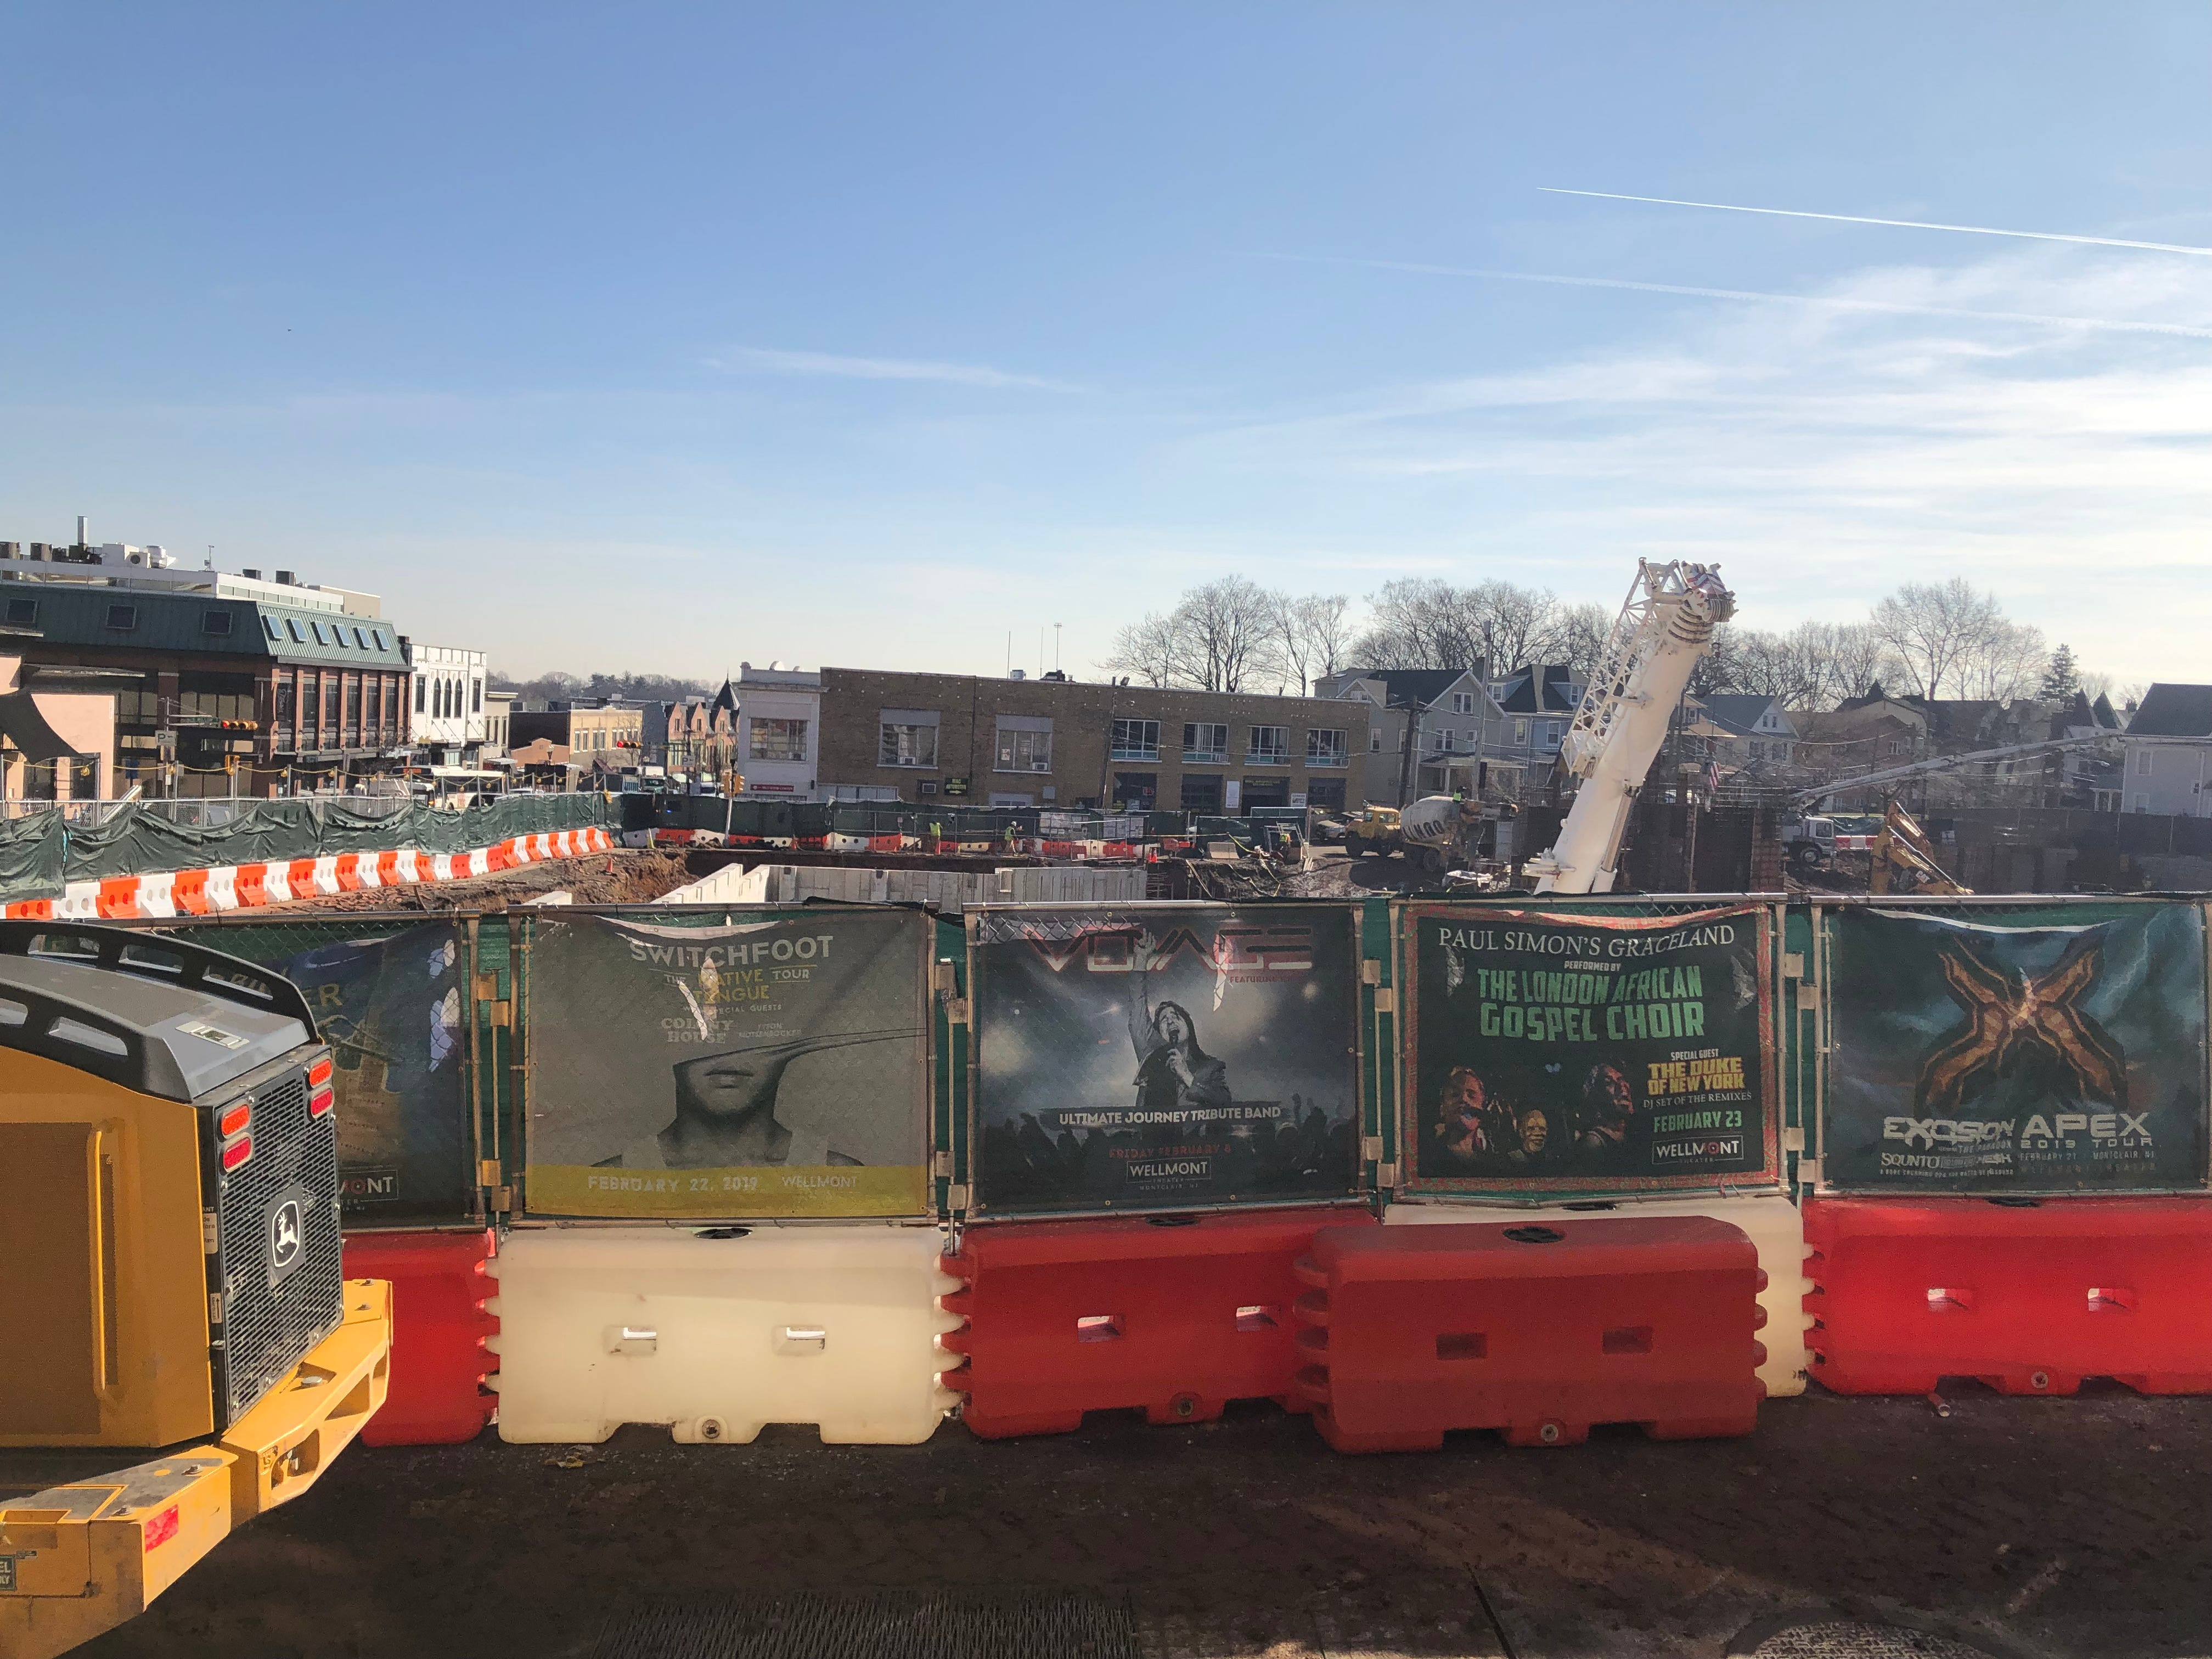 The 2.2-acre Seymour Street project looking south on Bloomfield Avenue. When complete it will contain two new buildings with 200 apartments and 75,825 square feet of commercial space. February 2019.